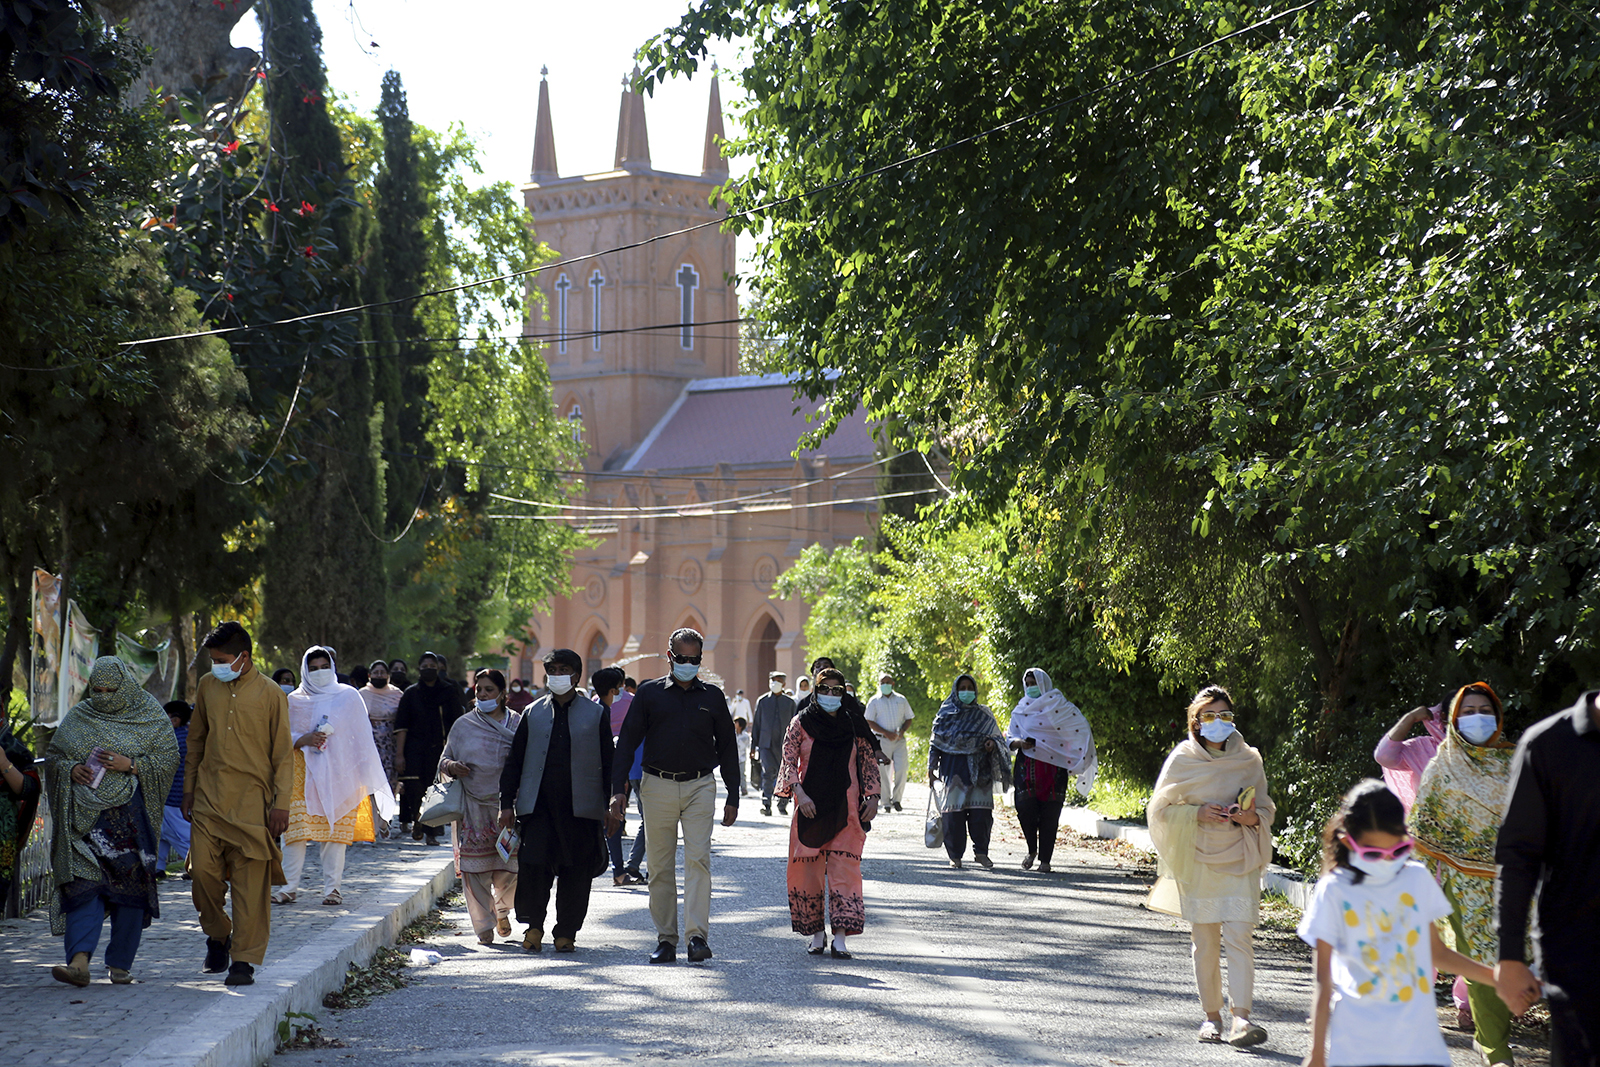 Christian families walk away from St. John's Cathedral after attending Good Friday, in Peshawar, Pakistan, Friday, April 2, 2021. (AP Photo/Muhammad Sajjad)